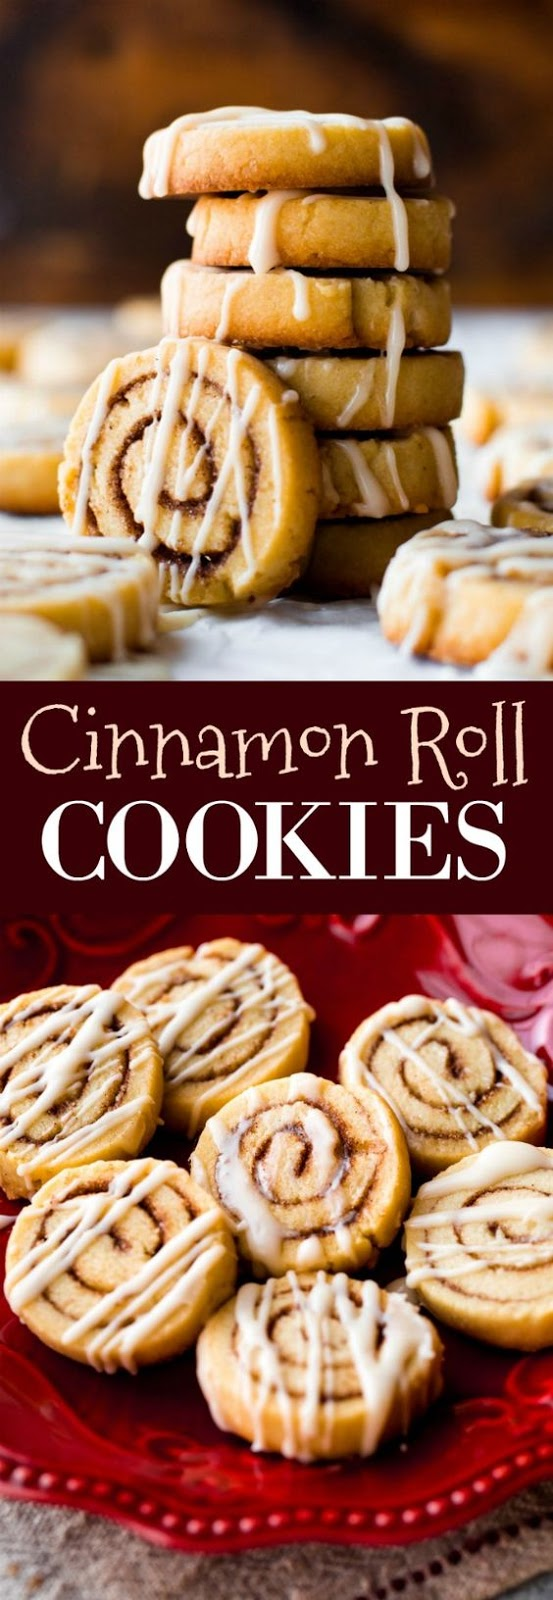 Cinnamon Roll Cookies   #DESSERTS #HEALTHYFOOD #EASYRECIPES #DINNER #LAUCH #DELICIOUS #EASY #HOLIDAYS #RECIPE #SPECIALDIET #WORLDCUISINE #CAKE #APPETIZERS #HEALTHYRECIPES #DRINKS #COOKINGMETHOD #ITALIANRECIPES #MEAT #VEGANRECIPES #COOKIES #PASTA #FRUIT #SALAD #SOUPAPPETIZERS #NONALCOHOLICDRINKS #MEALPLANNING #VEGETABLES #SOUP #PASTRY #CHOCOLATE #DAIRY #ALCOHOLICDRINKS #BULGURSALAD #BAKING #SNACKS #BEEFRECIPES #MEATAPPETIZERS #MEXICANRECIPES #BREAD #ASIANRECIPES #SEAFOODAPPETIZERS #MUFFINS #BREAKFASTANDBRUNCH #CONDIMENTS #CUPCAKES #CHEESE #CHICKENRECIPES #PIE #COFFEE #NOBAKEDESSERTS #HEALTHYSNACKS #SEAFOOD #GRAIN #LUNCHESDINNERS #MEXICAN #QUICKBREAD #LIQUOR